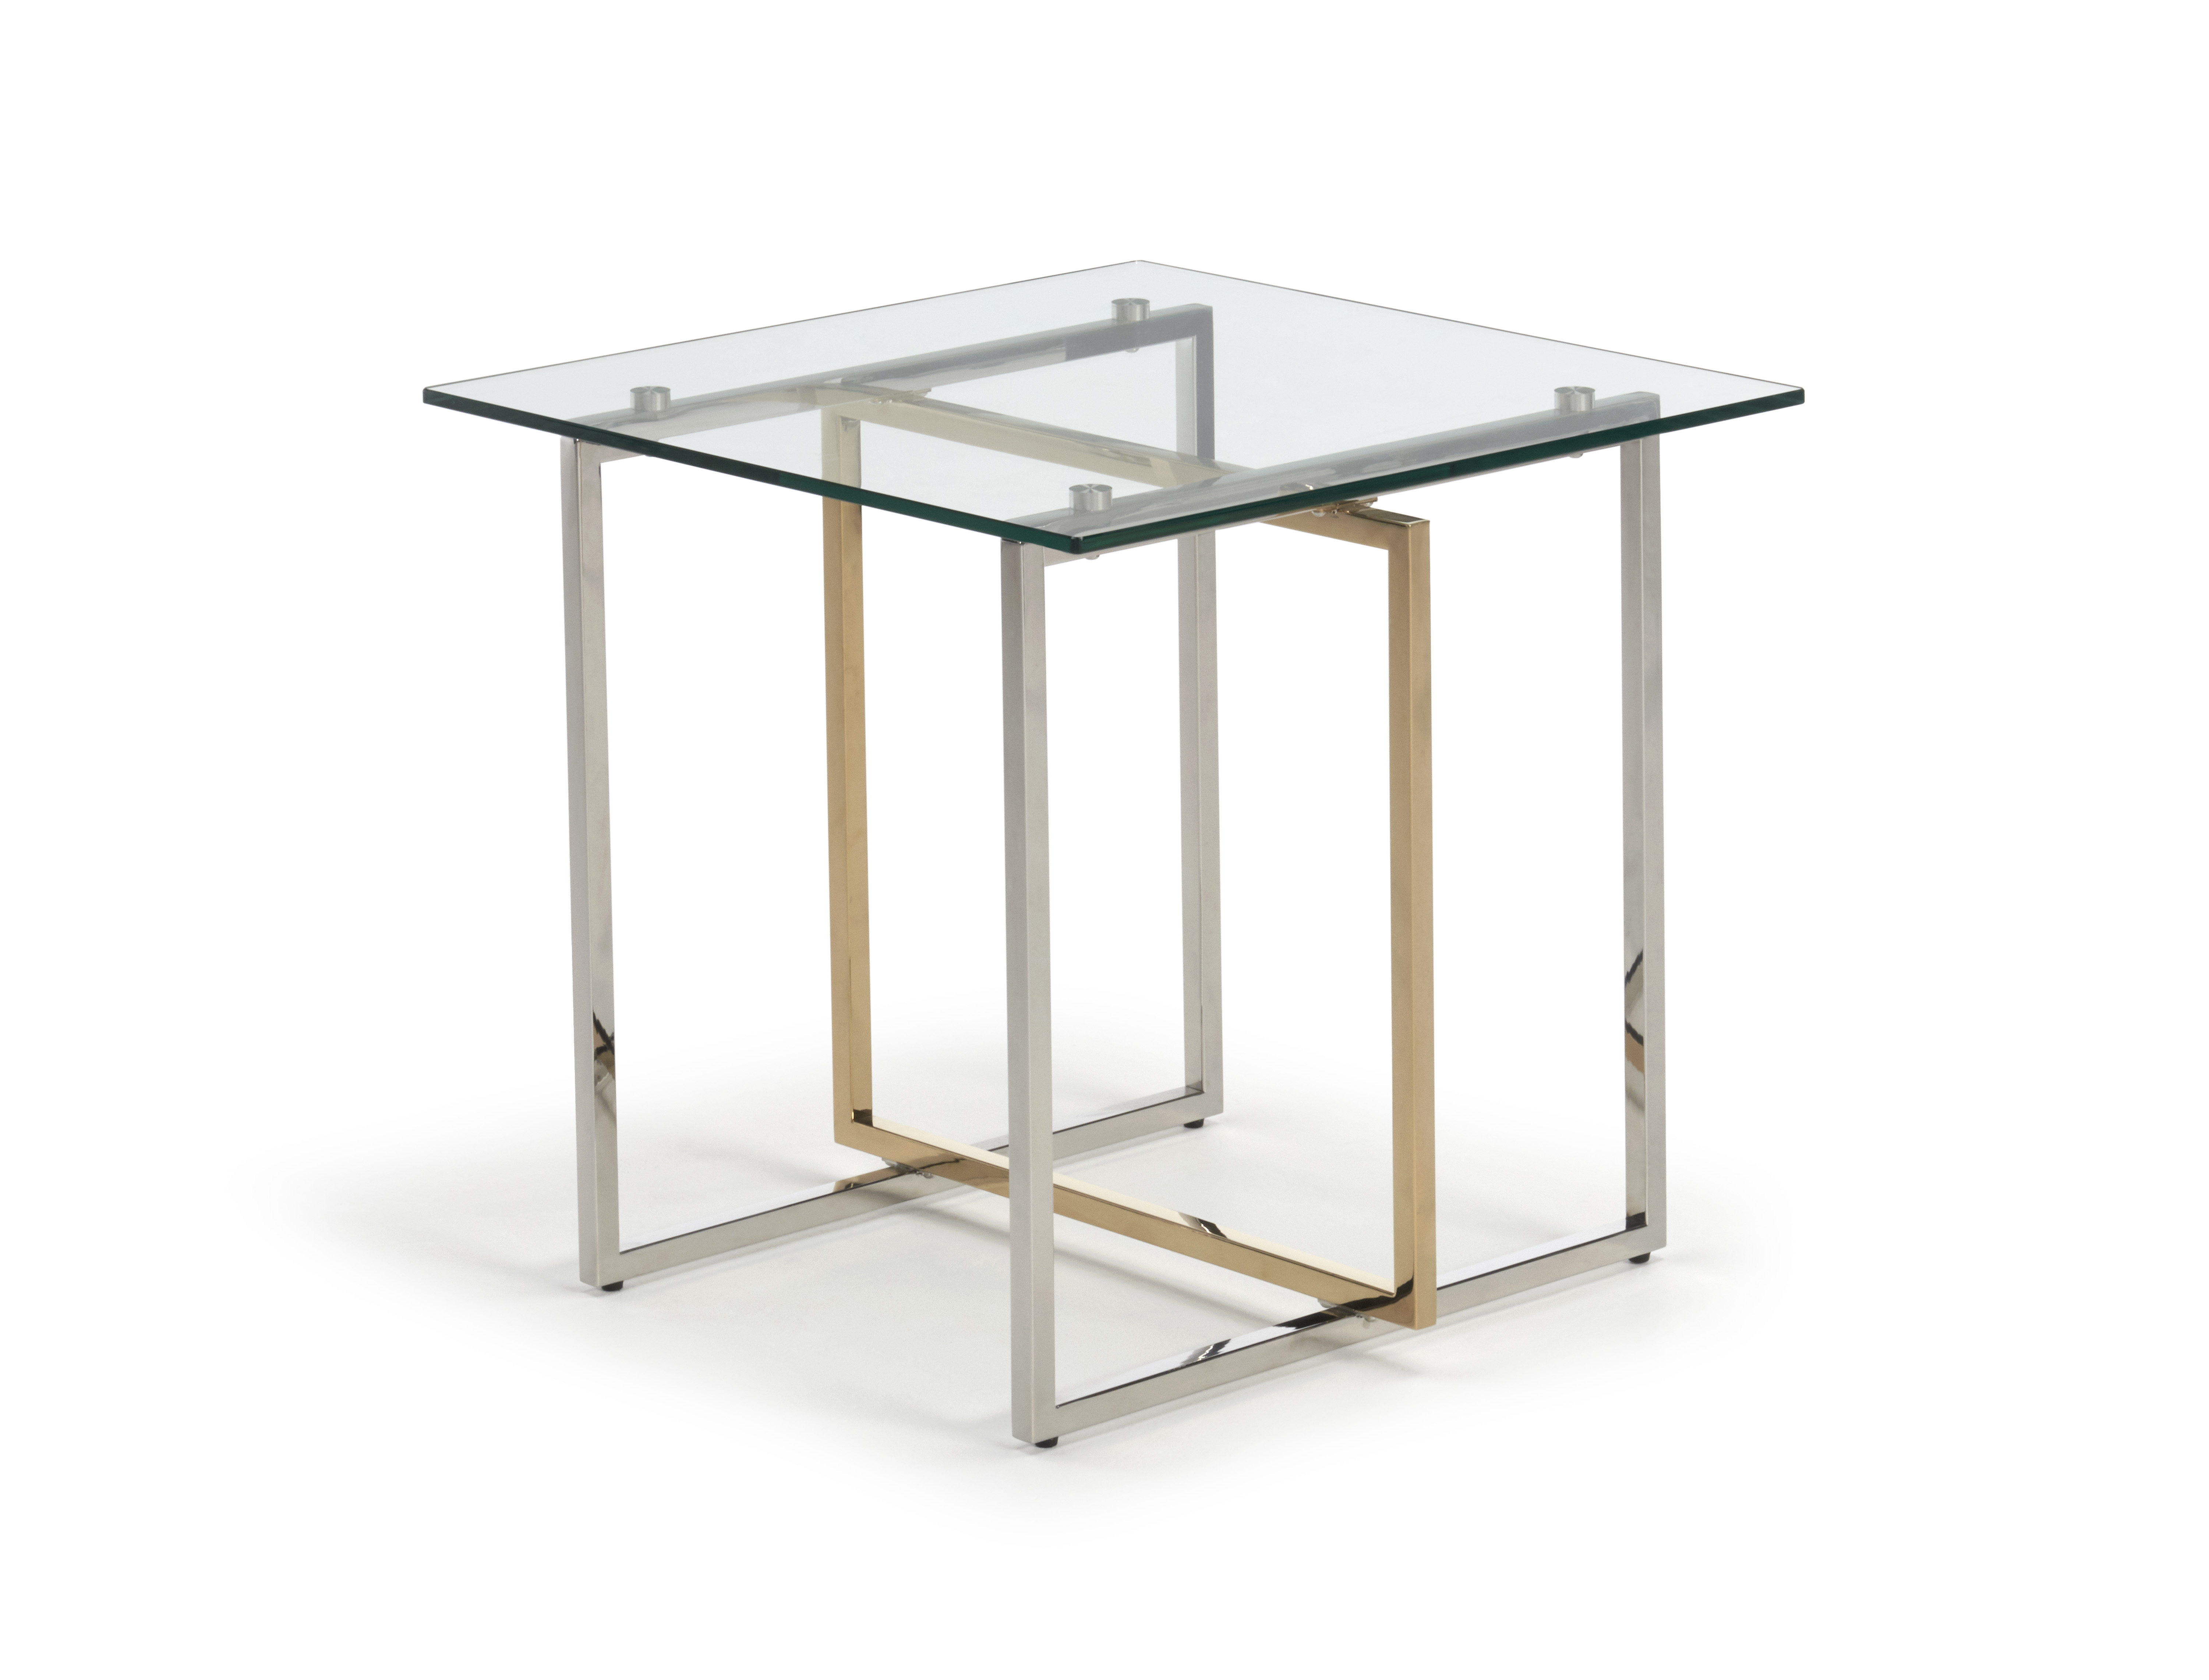 Dior Lamp Table